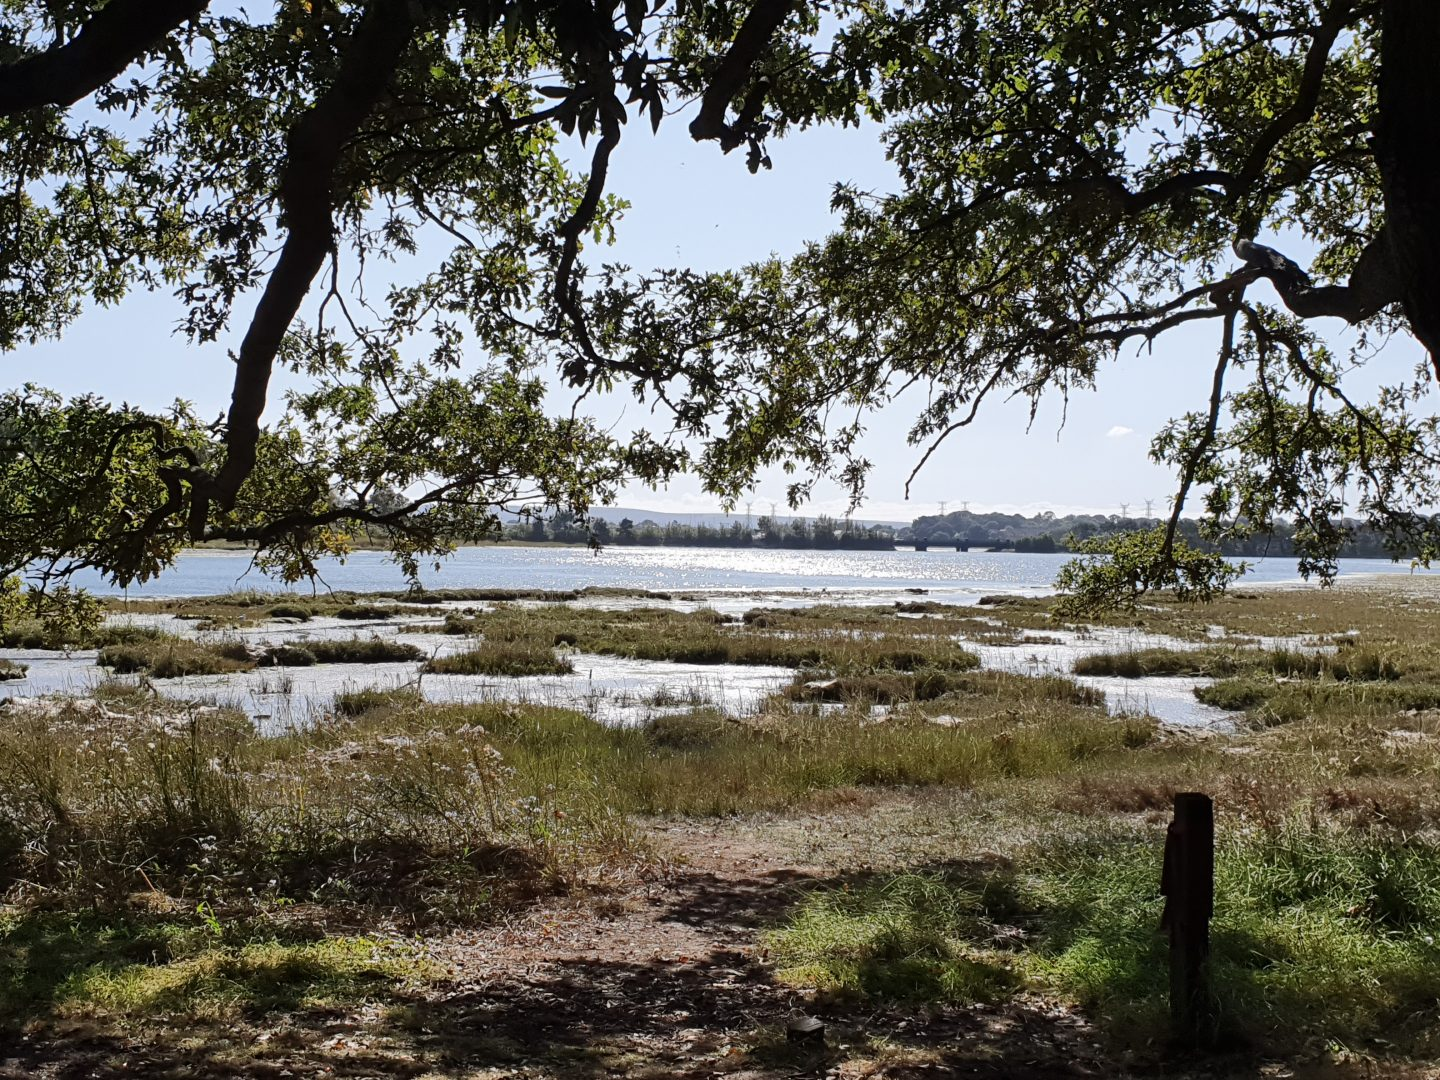 A view of a bay with trees overhanging in the foreground, marsh in the middle distance and water beyond.